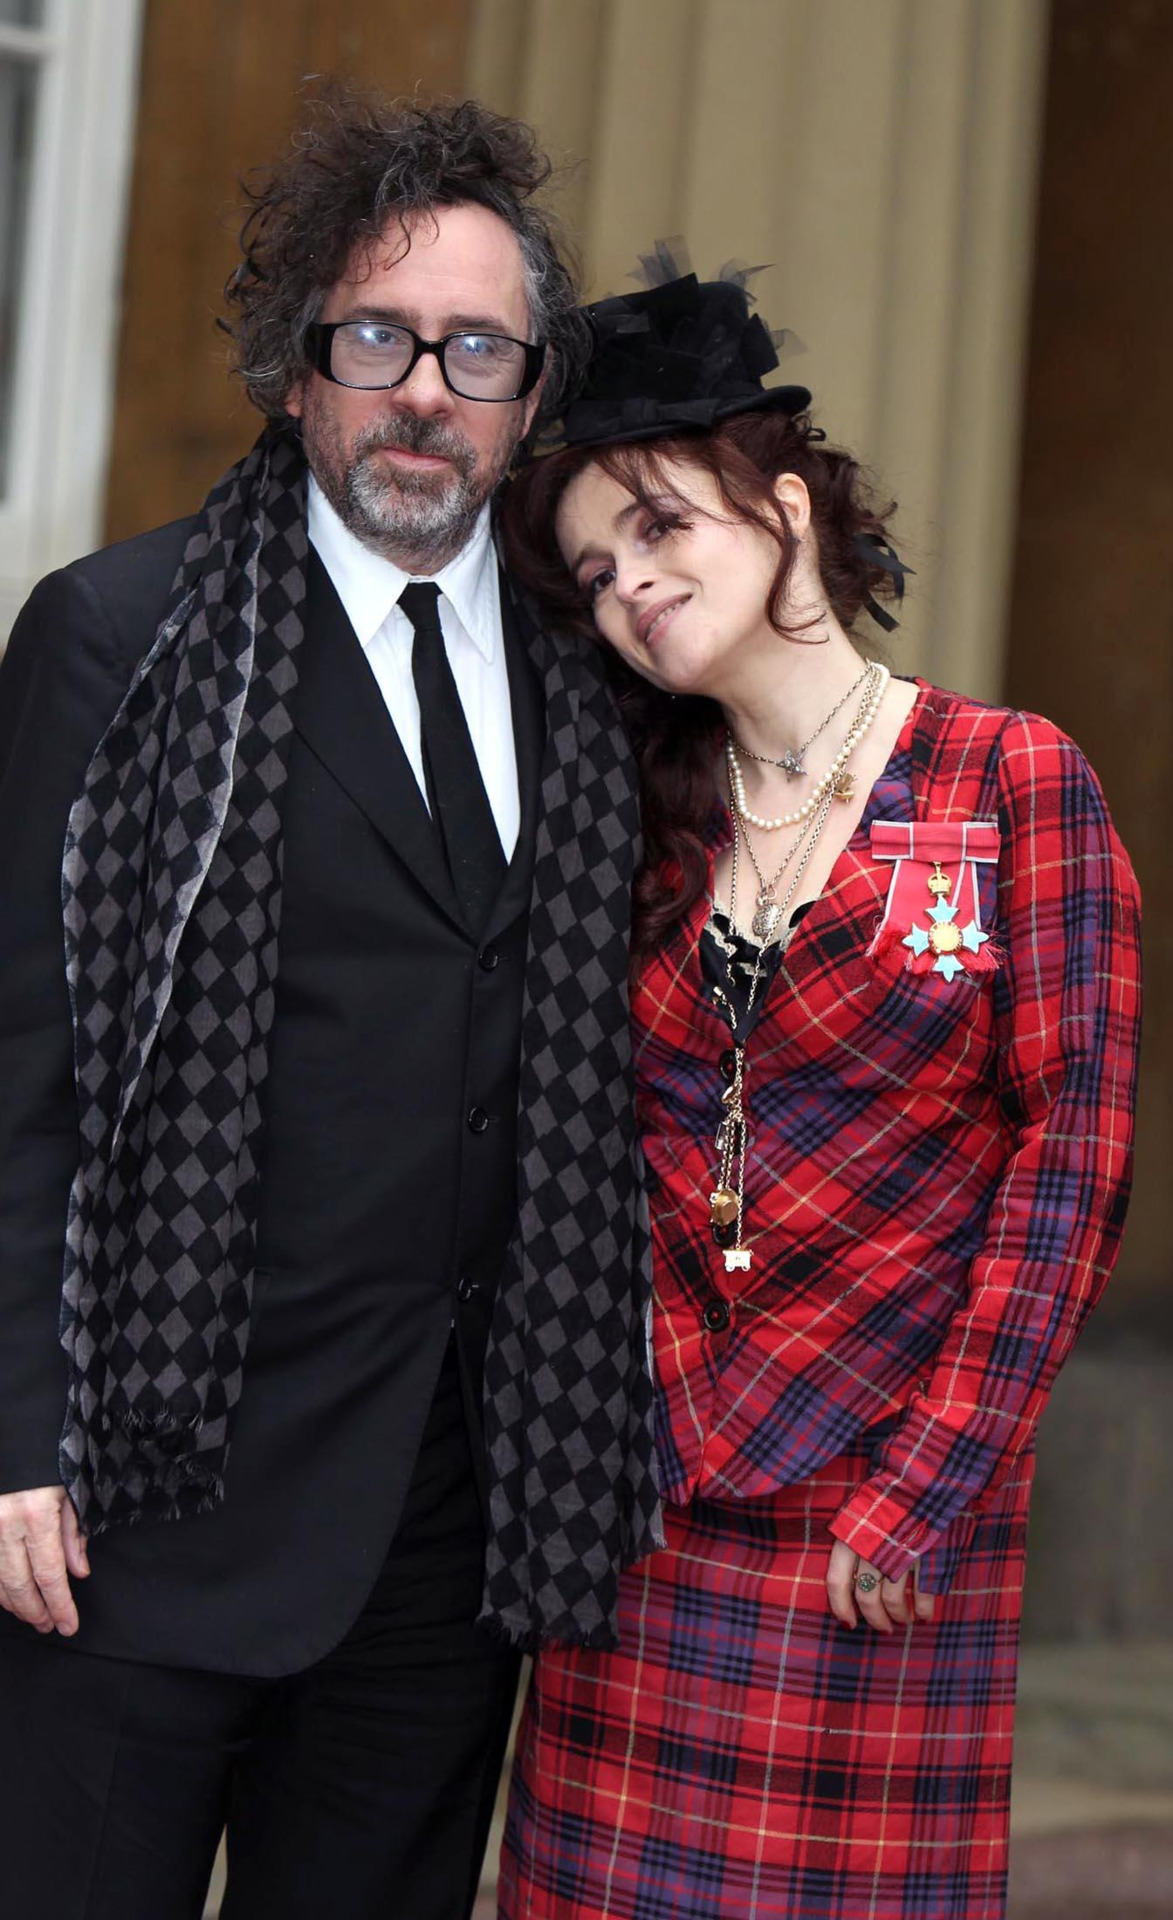 "suicideblonde:  Tim Burton and Helena Bonham Carter at Buckingham Palace, February 22nd Helena Bonham Carter received a Commander of the British Empire award for her services to Drama from the Queen. The actress believes that her father Raymond, who removed a tumour on his brain in 1979 via surgery and was left severely disabled until his death in 2004, would be incredibly proud.   ""I always thought my father deserved a medal for facing 25 years of chronic disability with quiet daily heroism so I am delighted to accept such a wonderful honour in his memory,"""